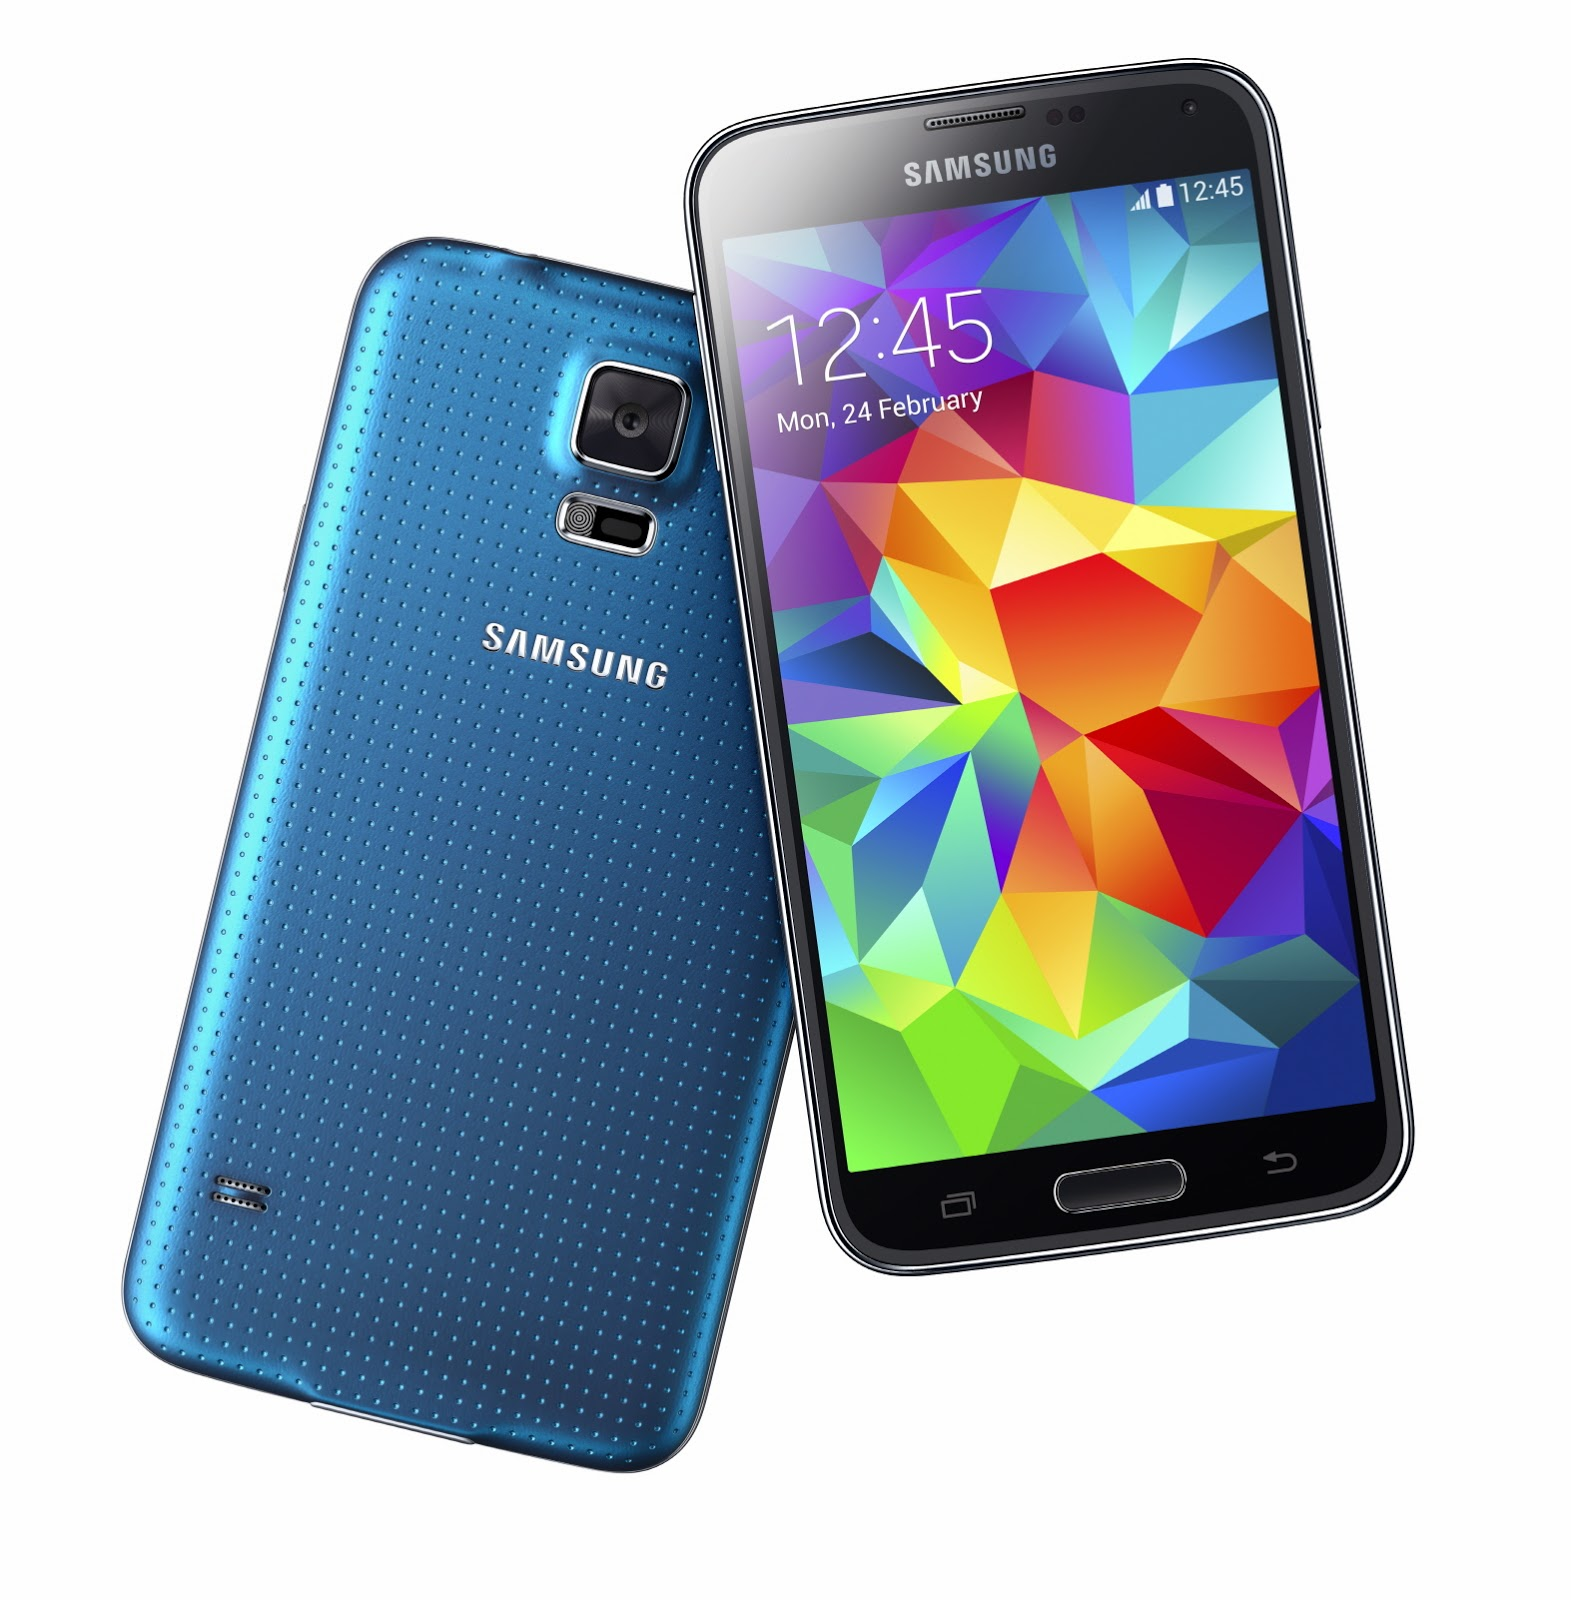 Samsung Galaxy S5 gets some sort of low-cost octa-core rival in this particular $299. 99 S5